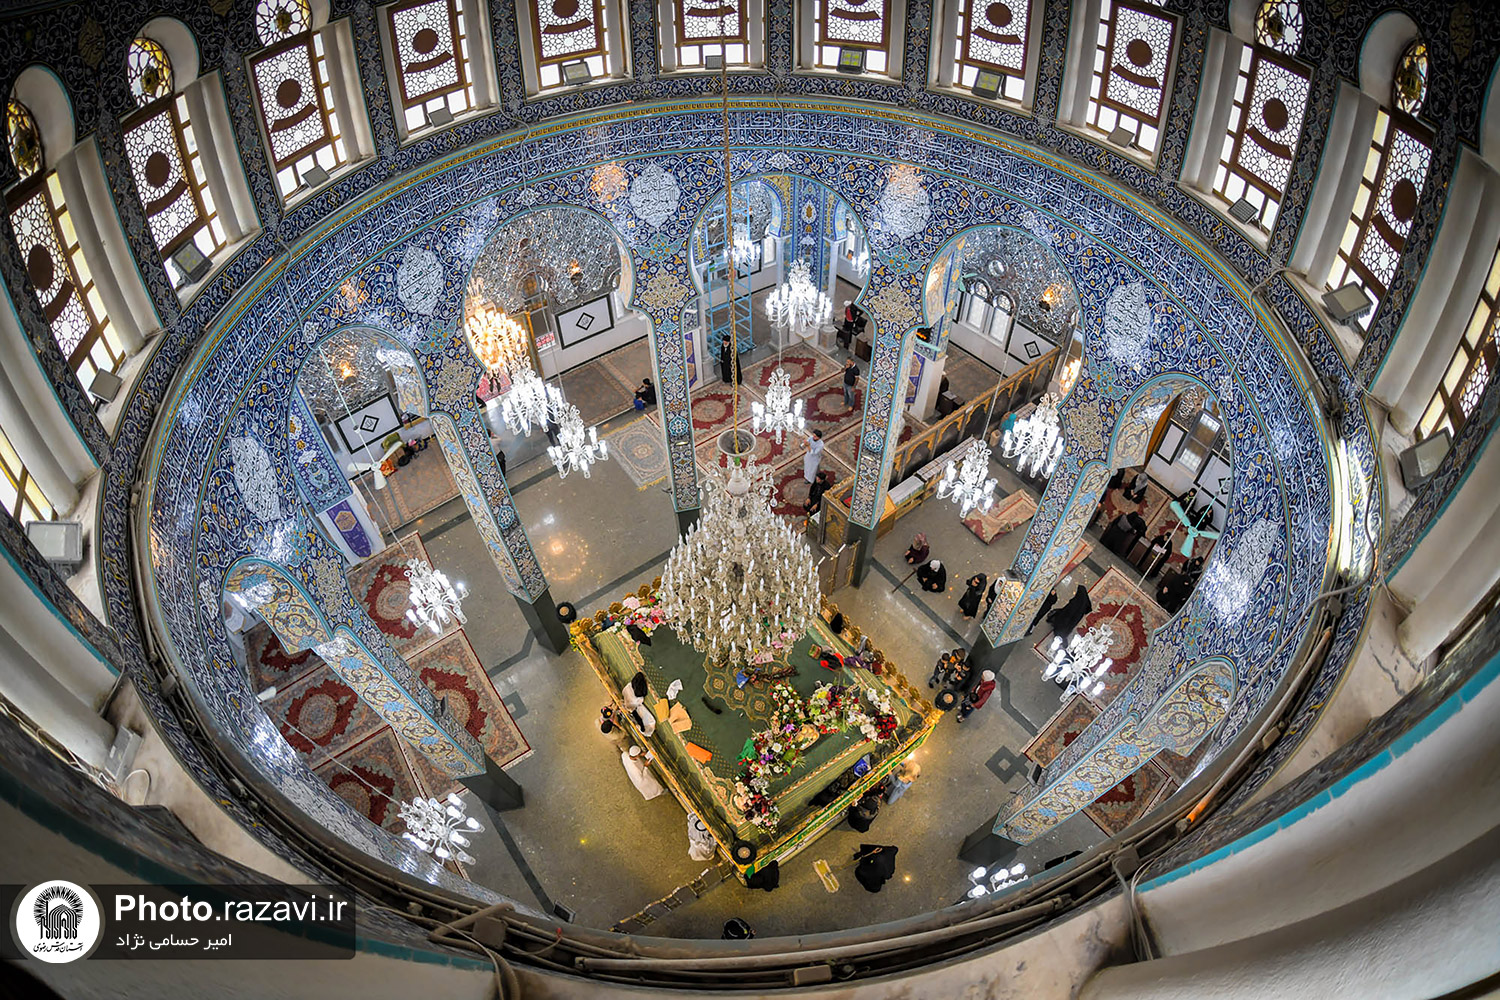 New Photos From Holy Shrine of Lady Zaynab (S.A)